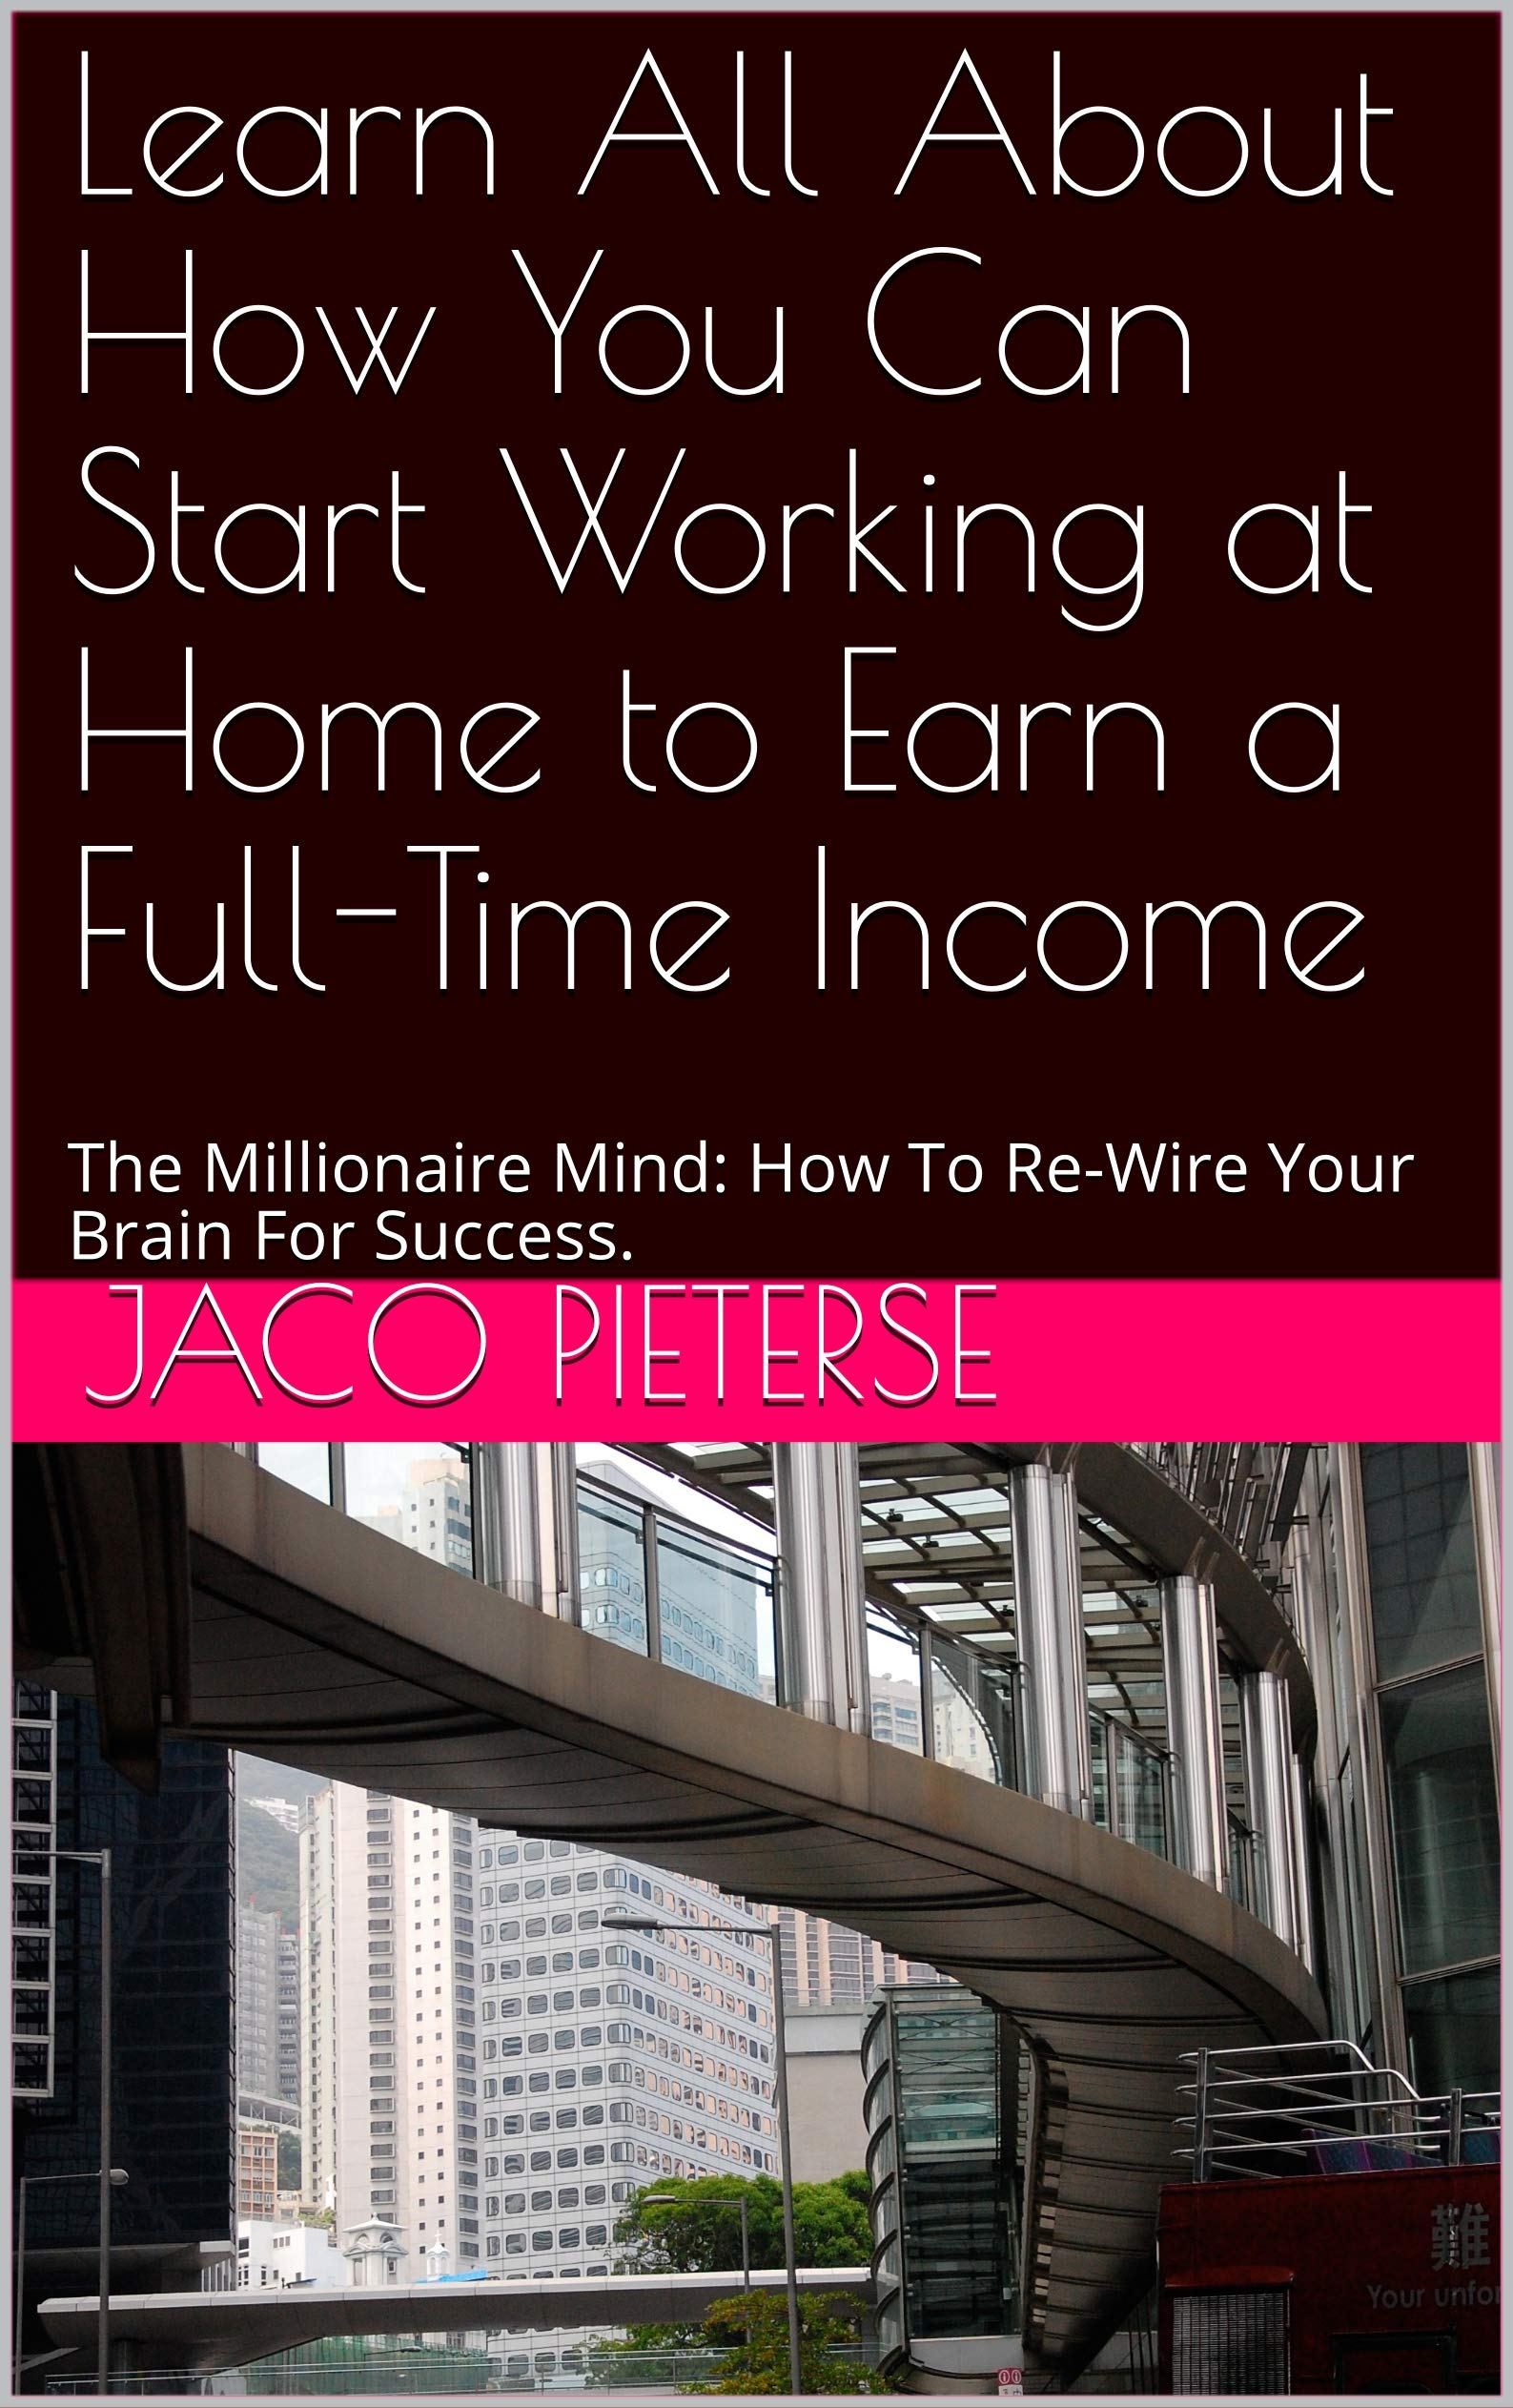 Learn All About How You Can Start Working at Home to Earn a Full-Time Income: The Millionaire Mind: How To Re-Wire Your Brain For Success.